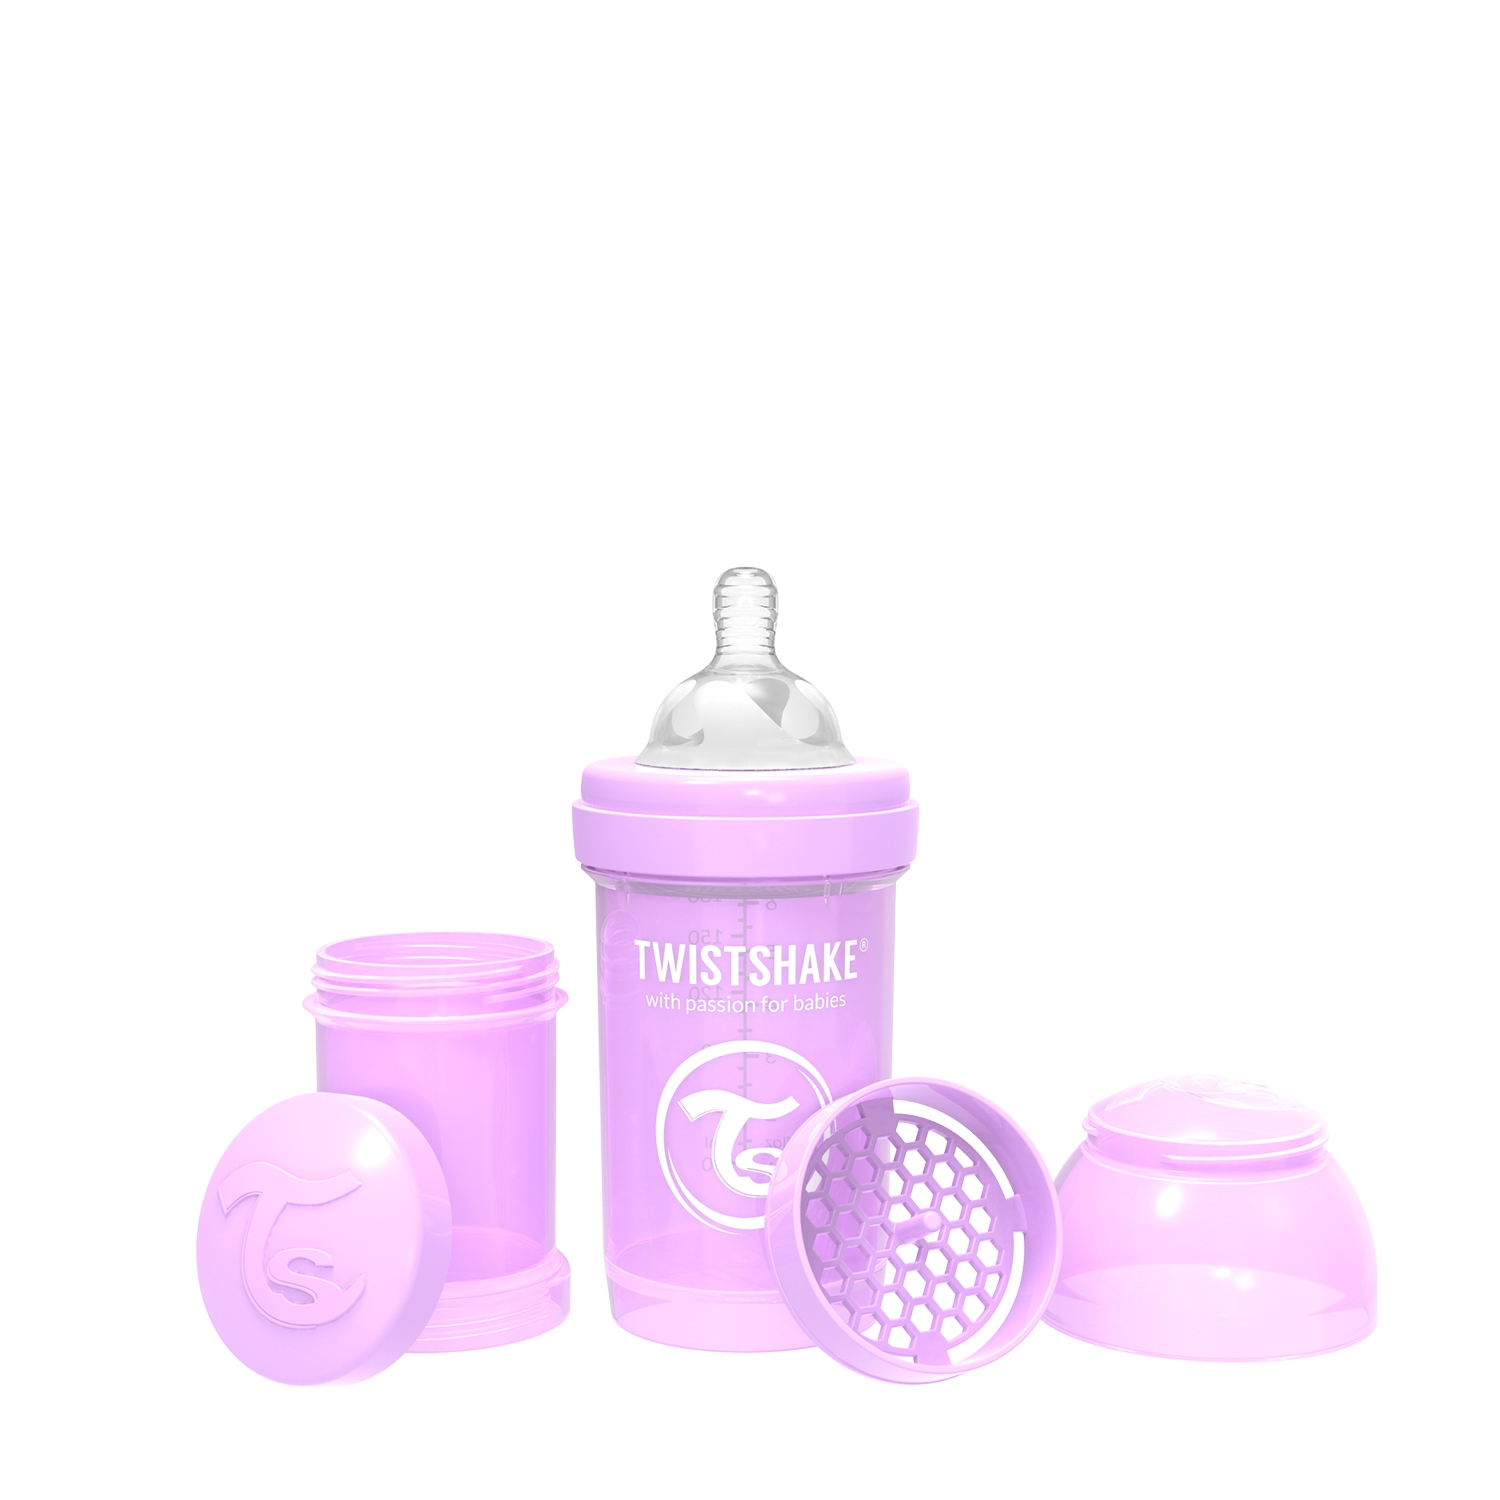 Mamadera Twistshake Anti-Colic 180ml Violeta